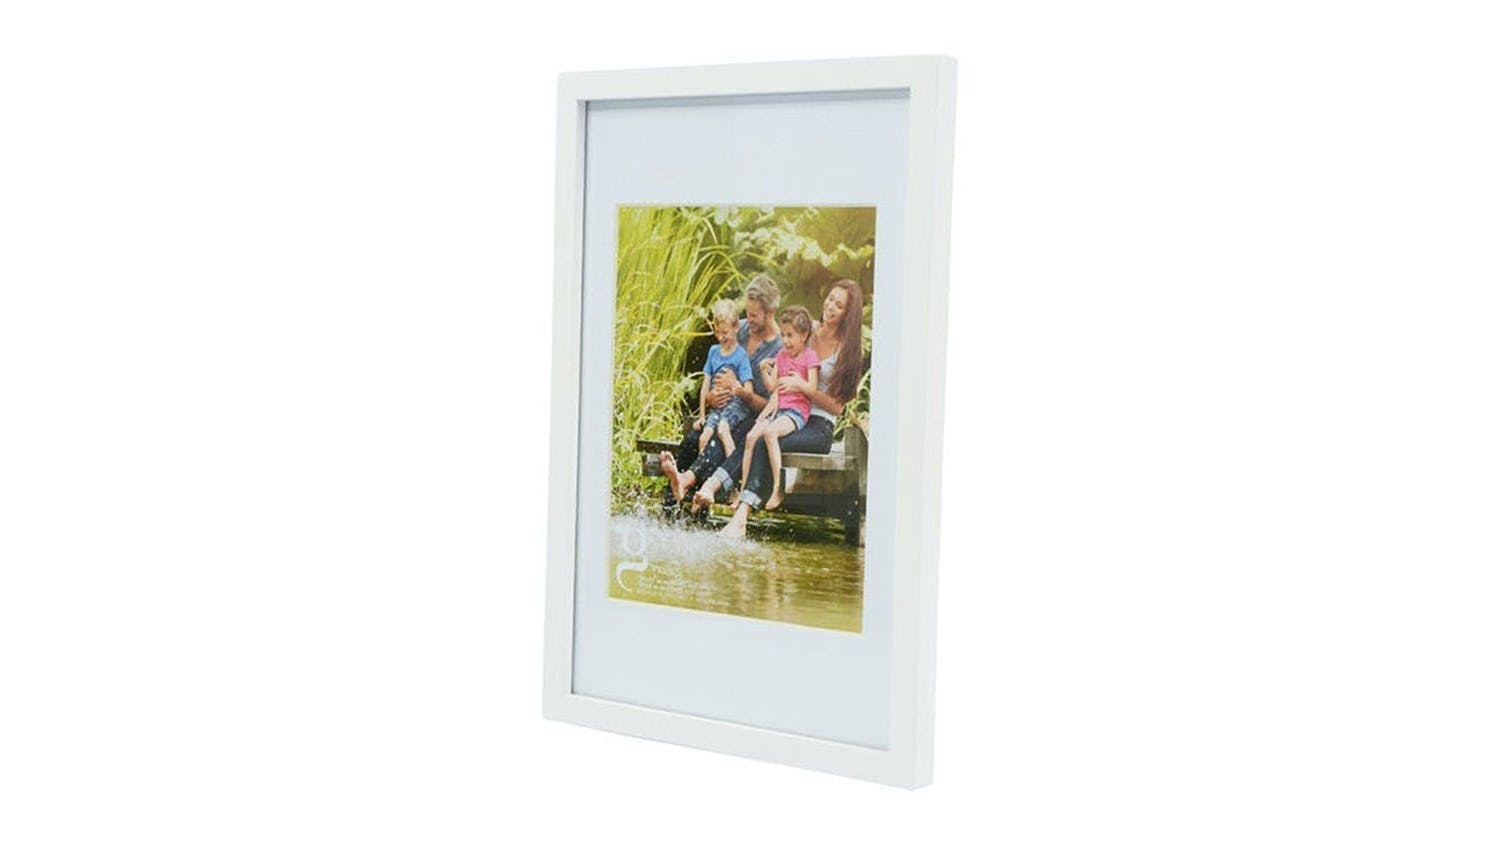 UR1 Gallery 10x15 Photo Frame with 8x10 Opening - White